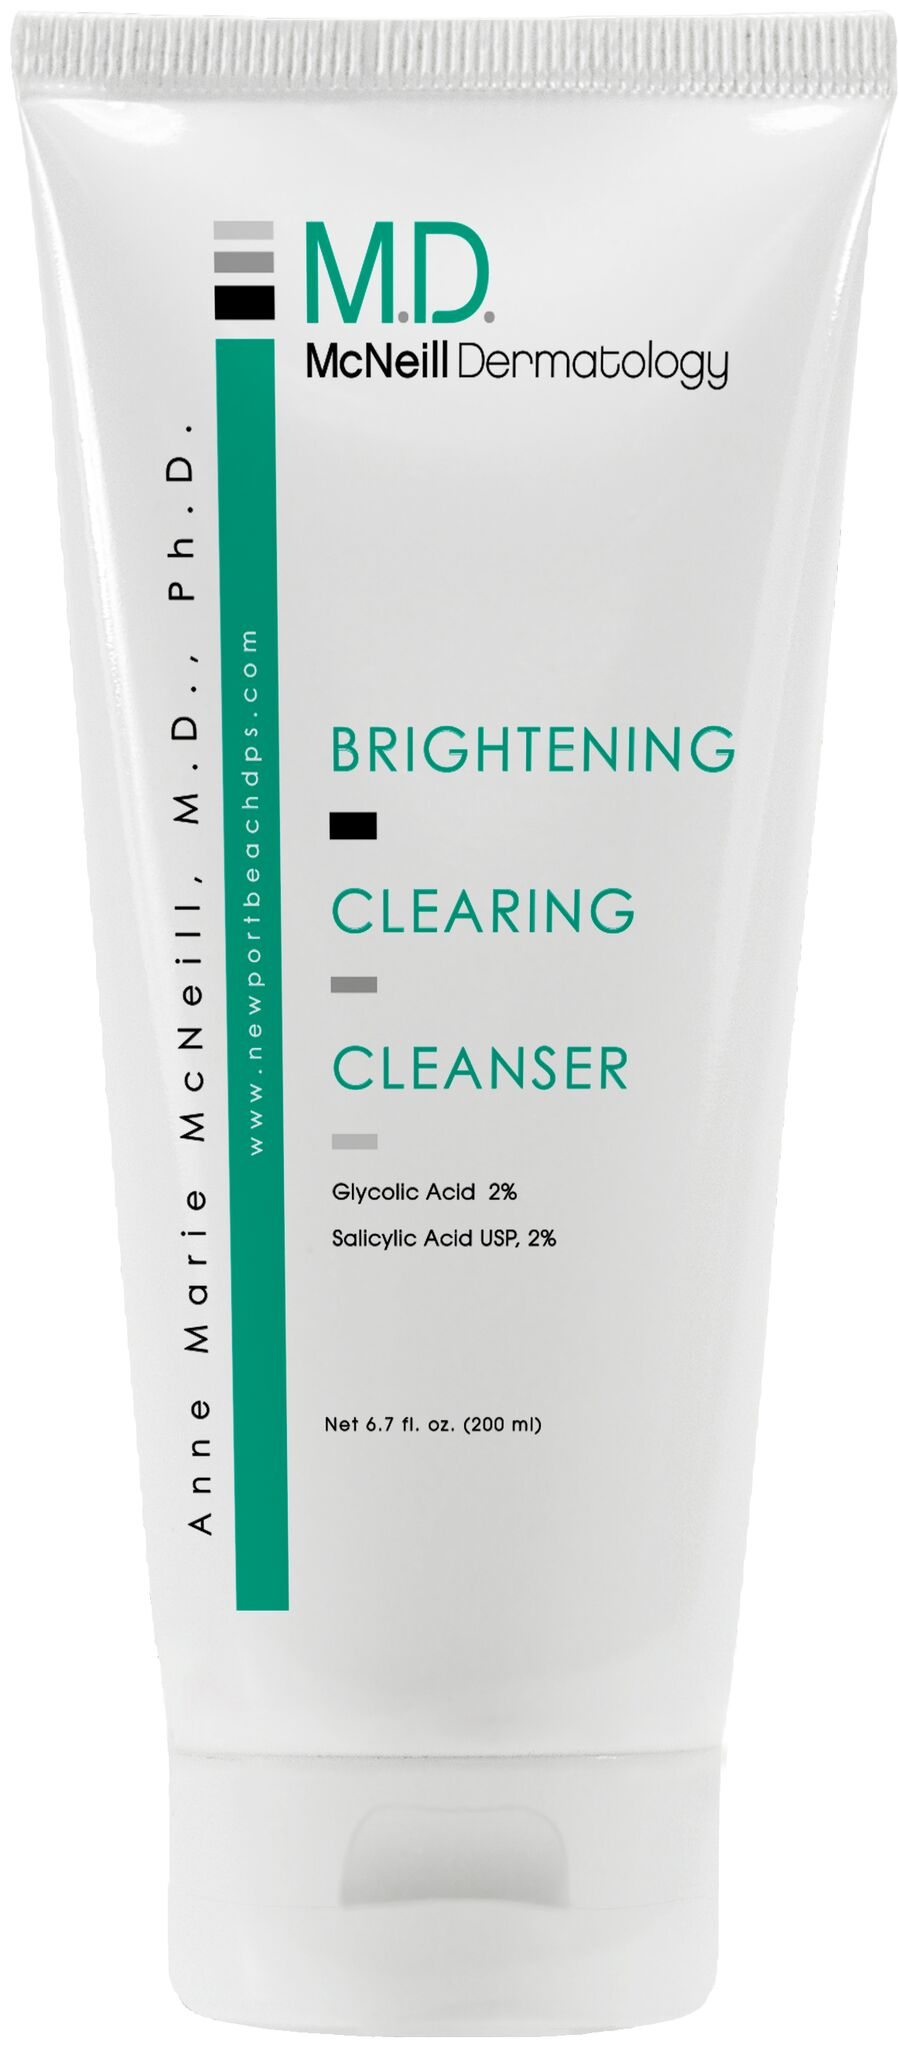 Product Newport Beach Dermatology Plastic Surgery Twin Pack Ovale Micellar Water Brightening 200ml Md Mcneill Clearing Cleanser